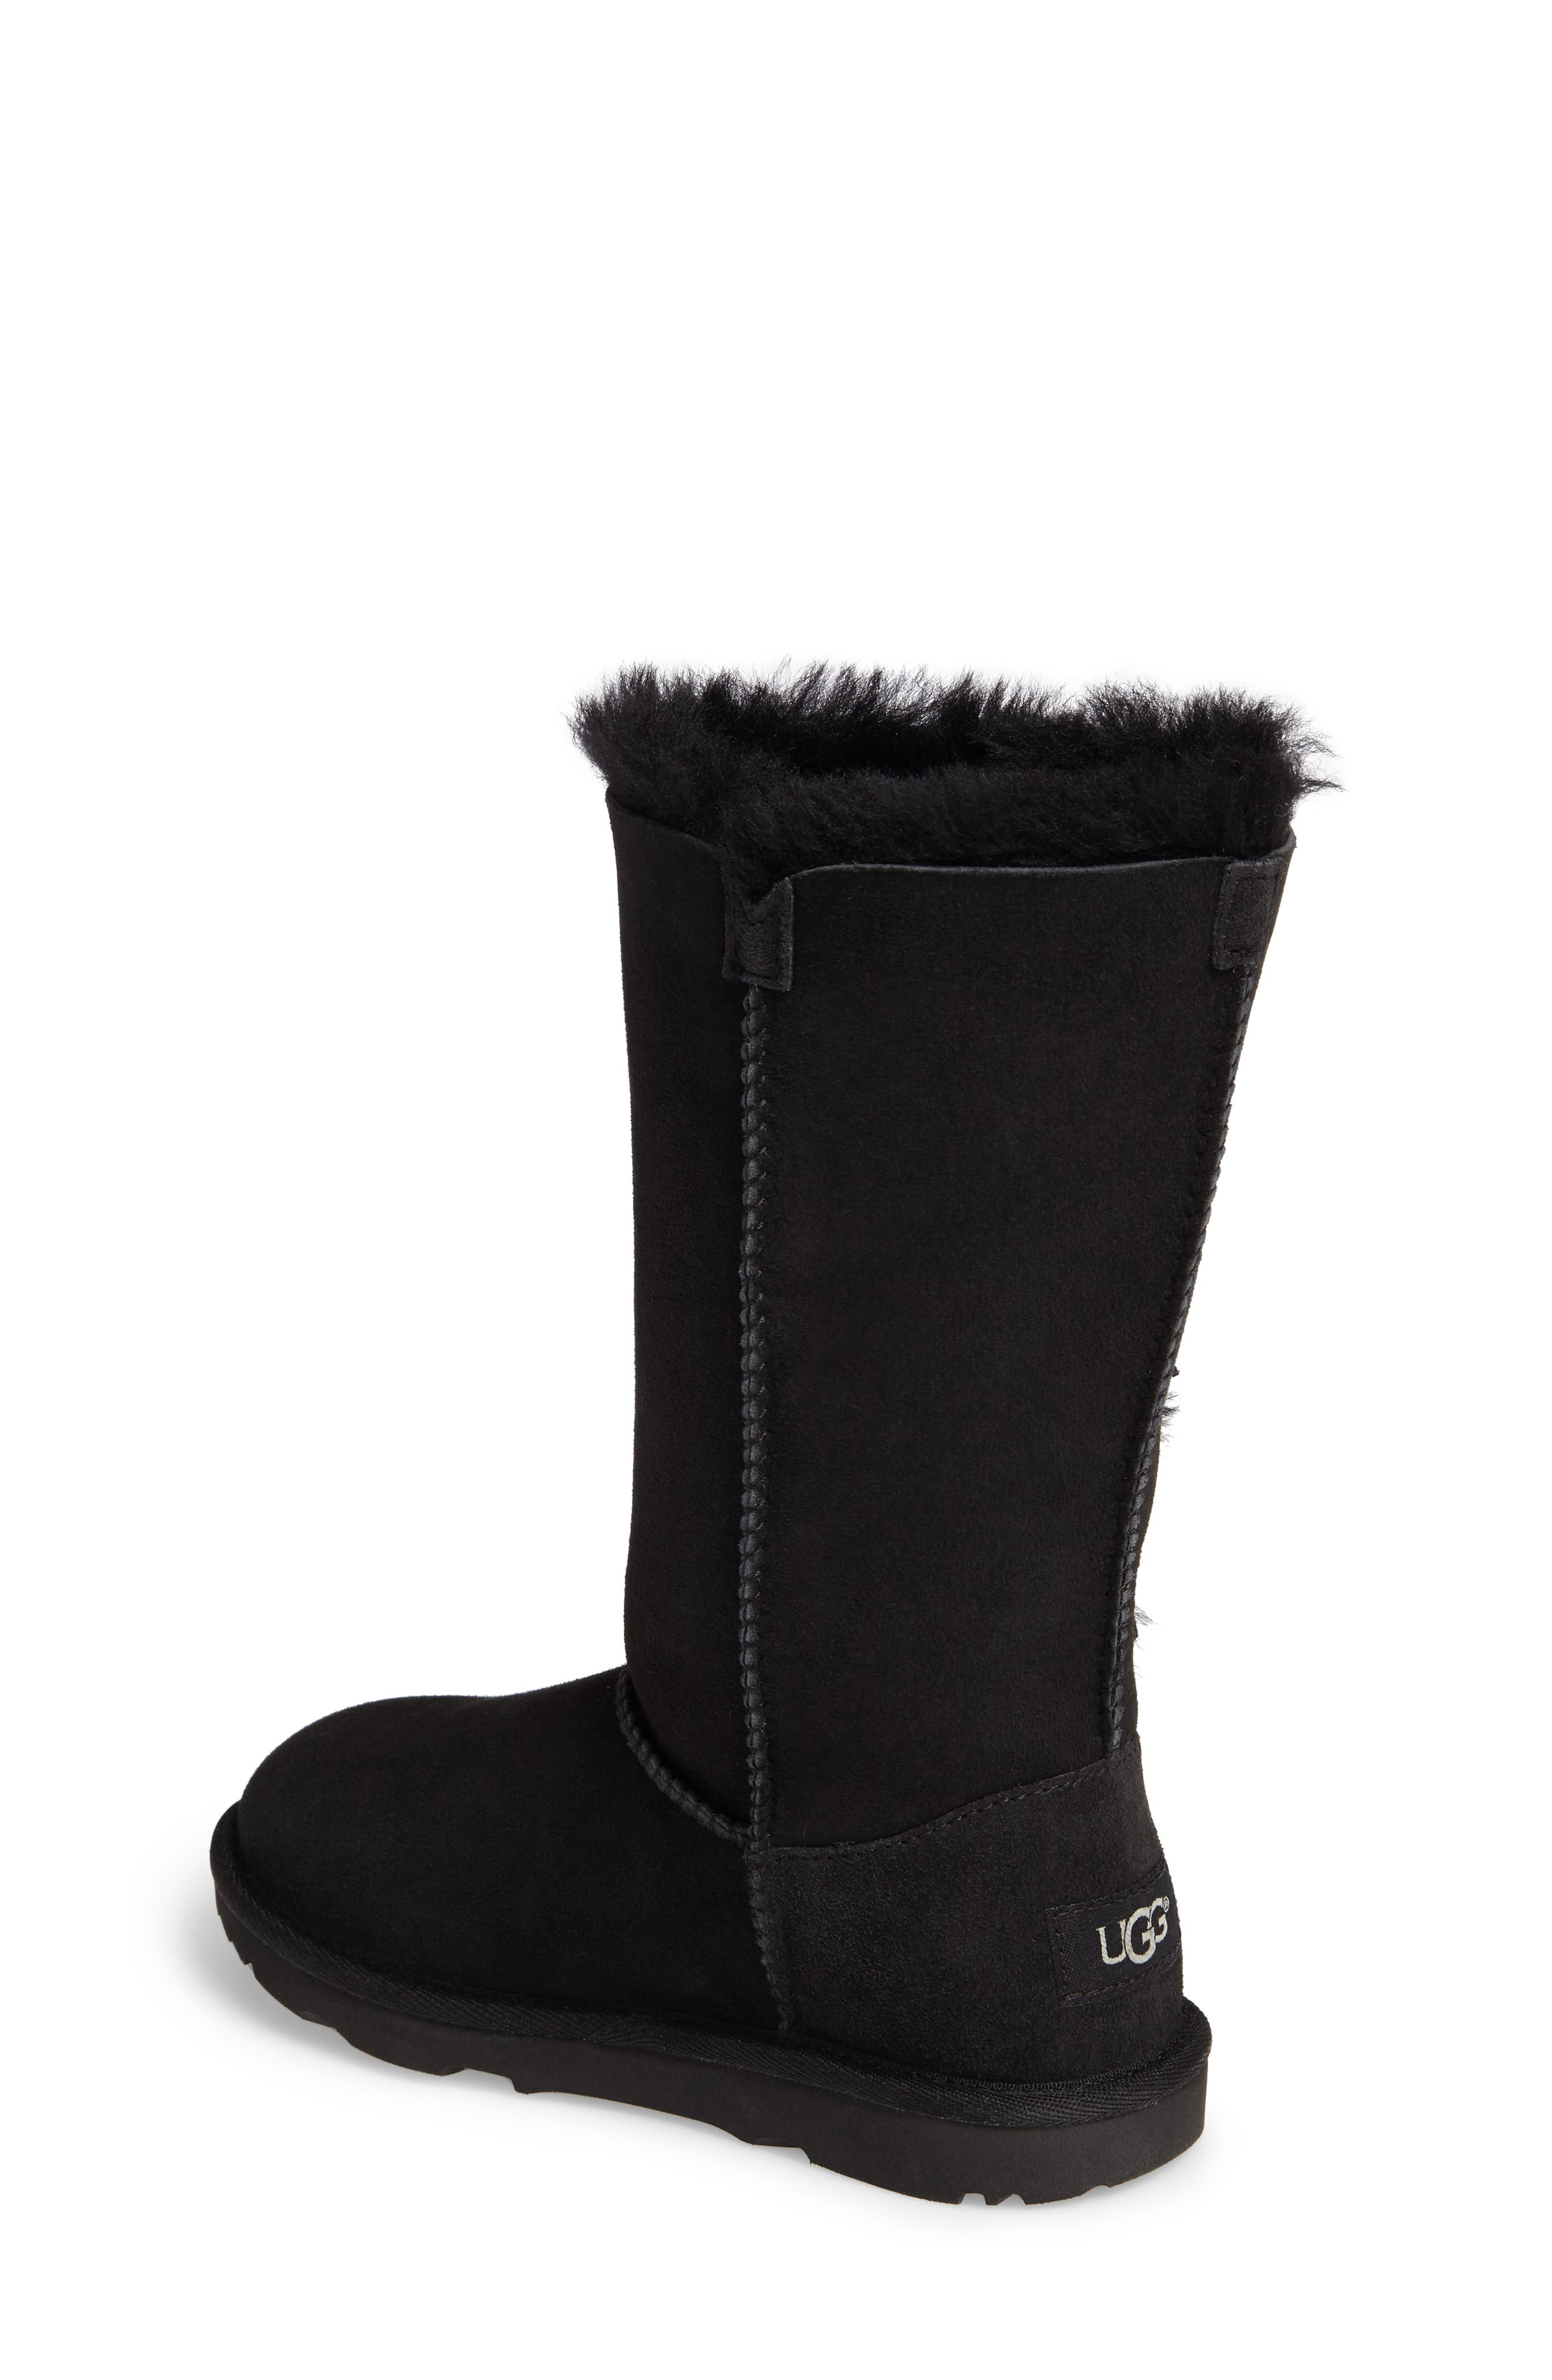 Bailey Button Triplet II Genuine Shearling Boot,                             Alternate thumbnail 2, color,                             Black Suede